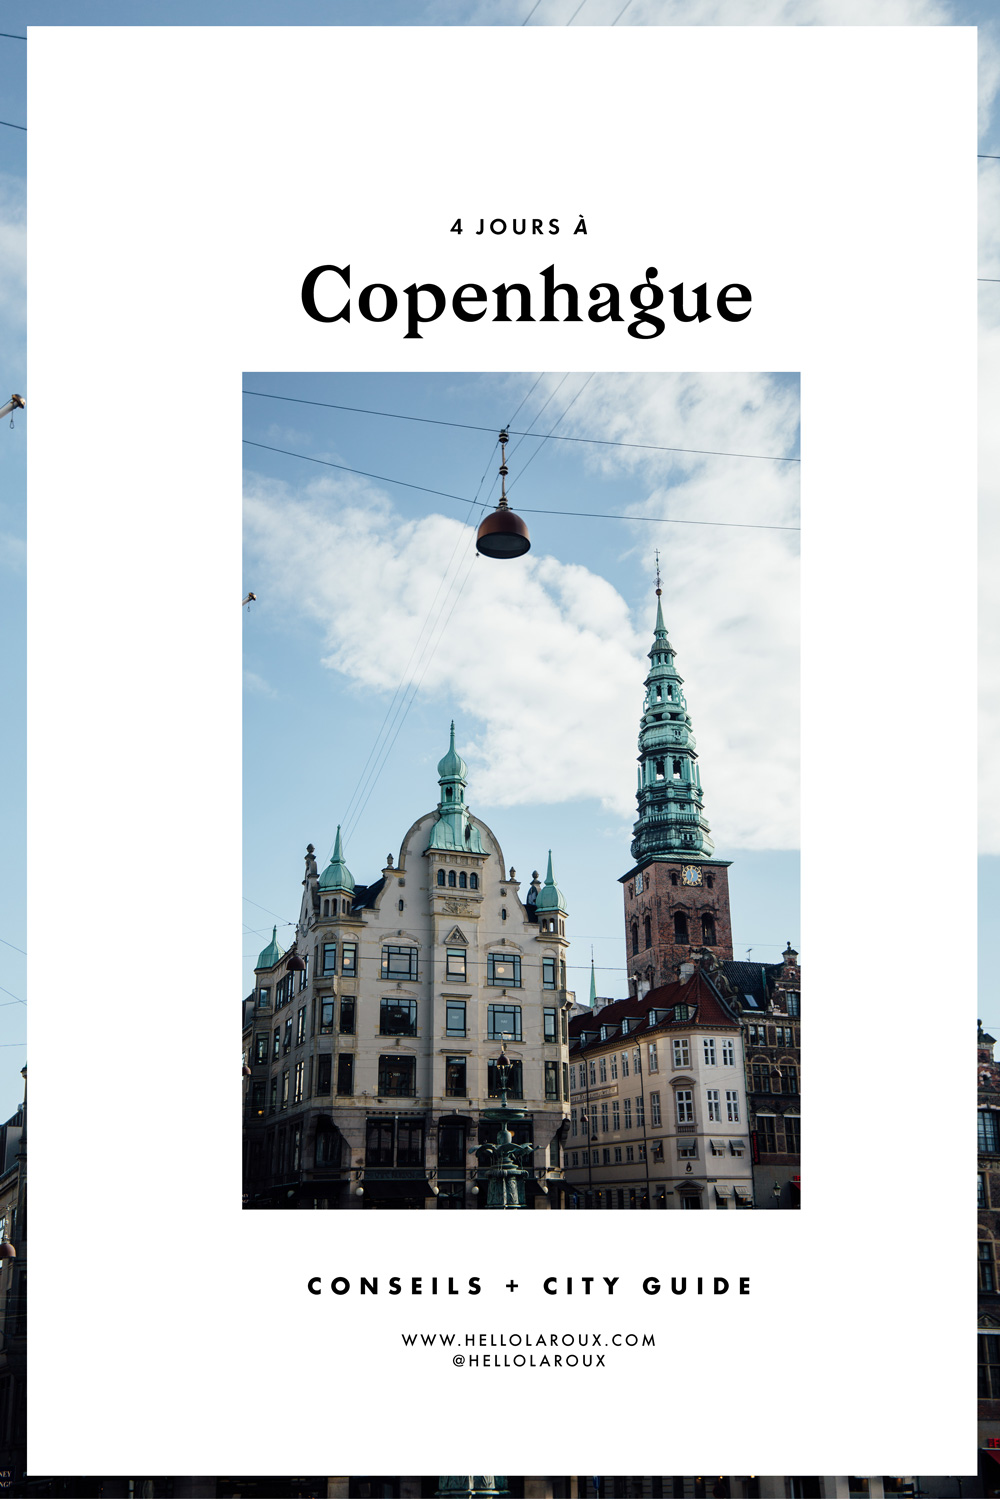 visiter Copenhague - city guide